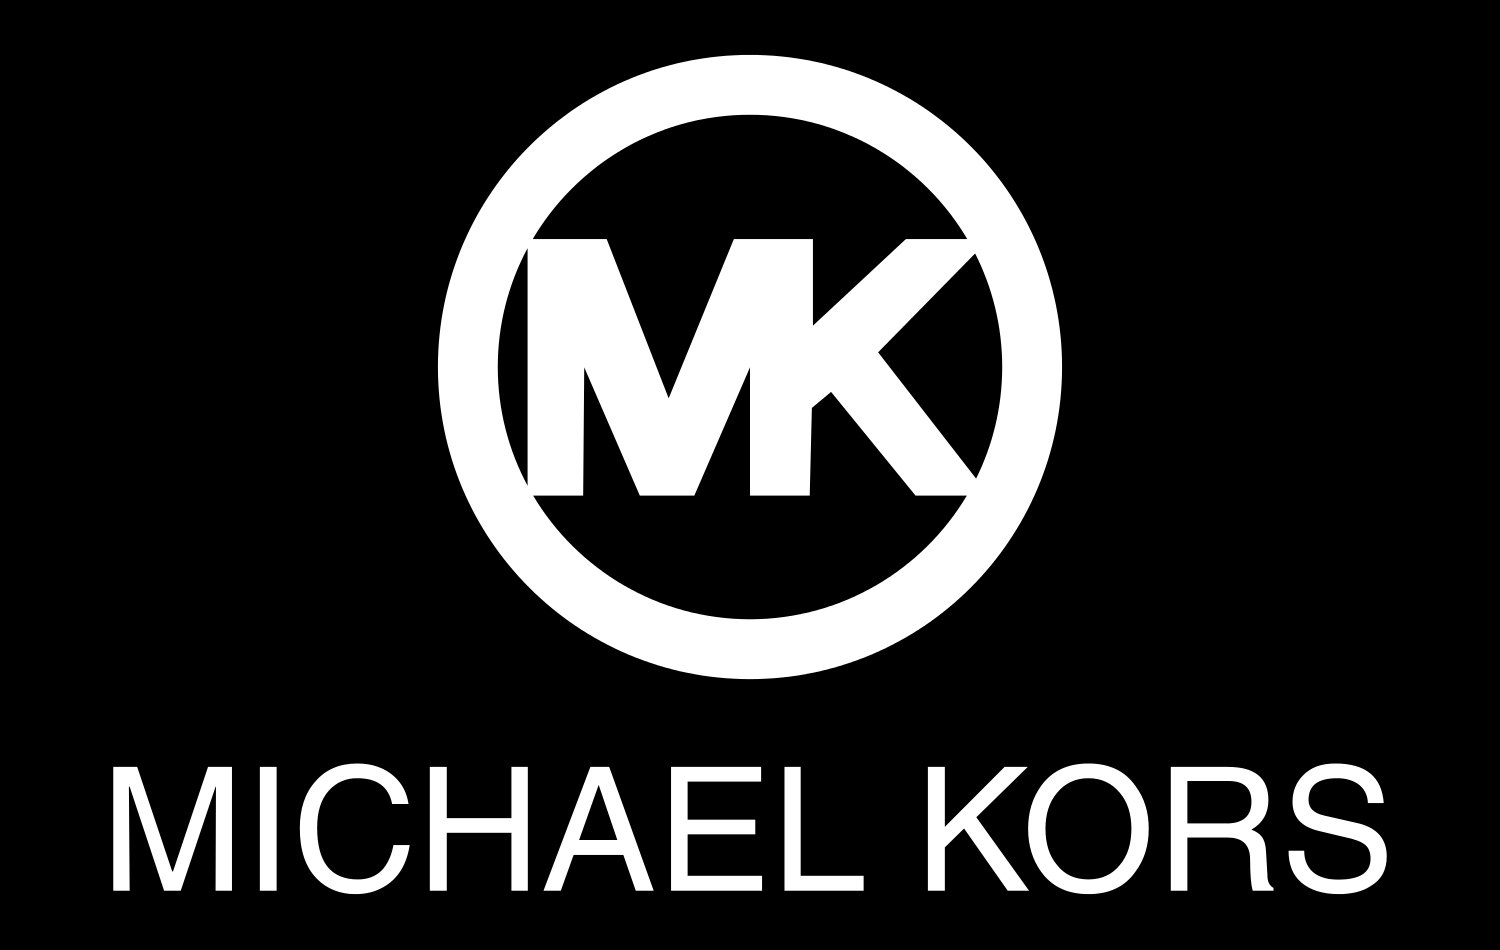 How Much Is Insurance >> Michael Kors Logo, Michael Kors Symbol, Meaning, History and Evolution